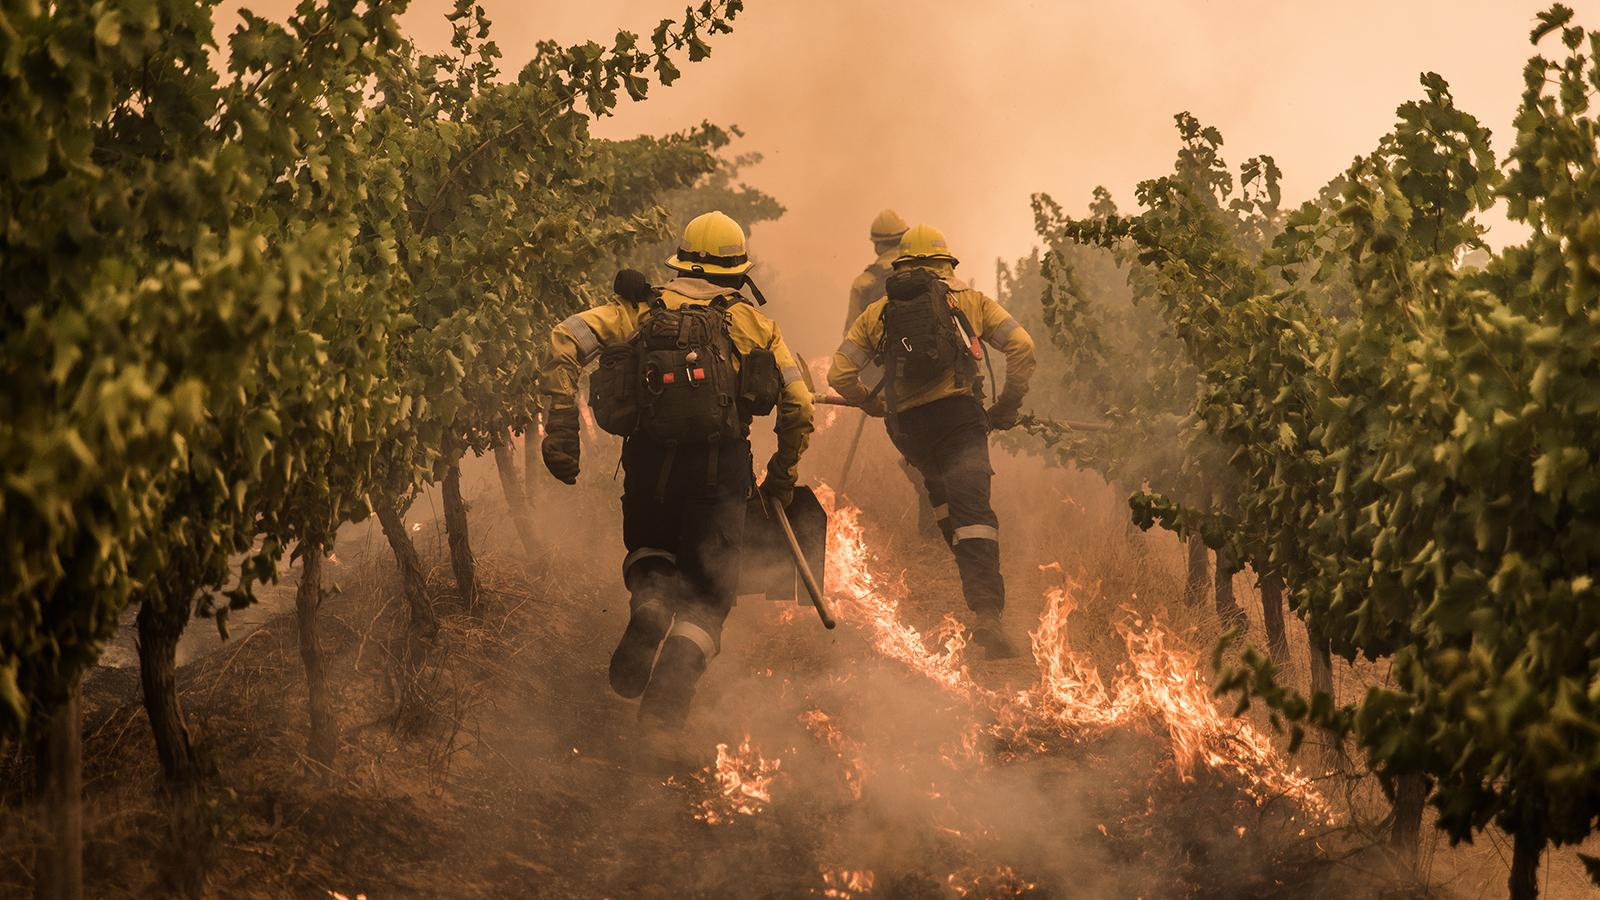 Winemakers in South Africa's Stellenbosch Assess Wildfire Damage